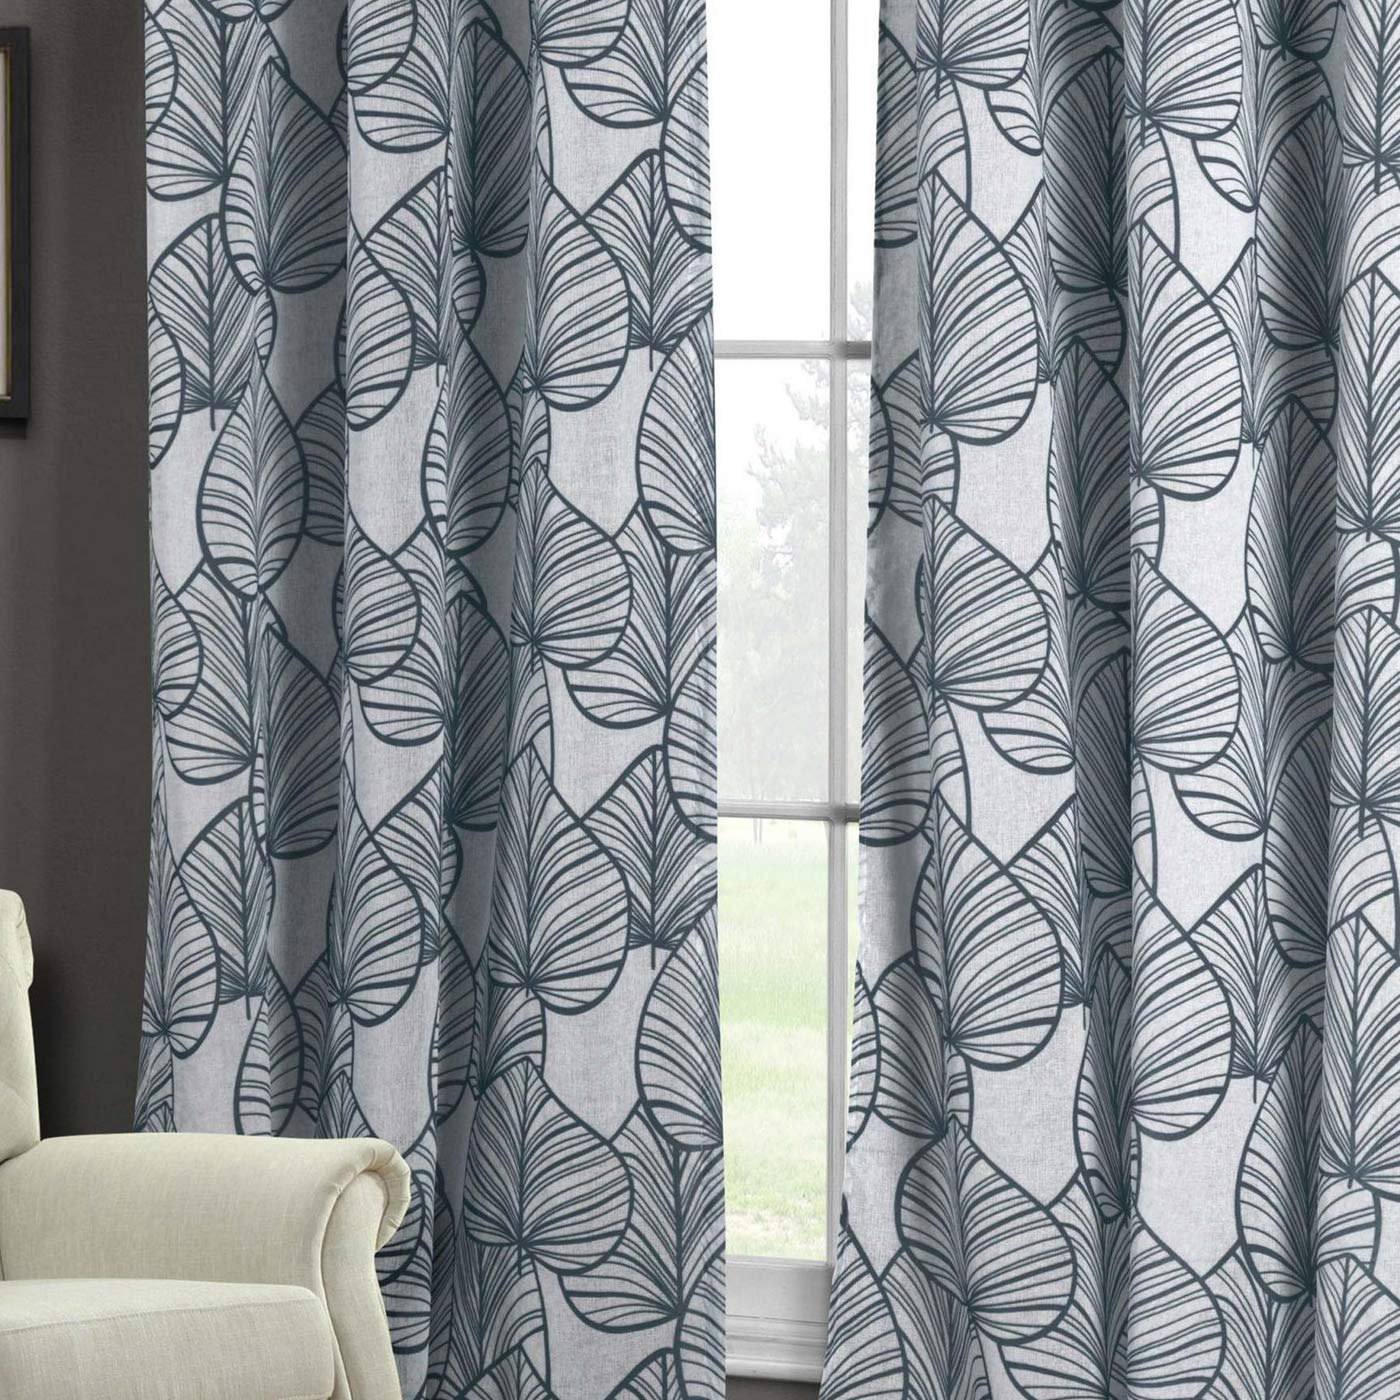 38 X 84 Inch - Indigo Blue Home Fashion Faux Linen Floral Leaf Grommet Top Window Curtains for Living Room /& Bedroom Duck River Textiles Assorted Colors Set of 2 Panels